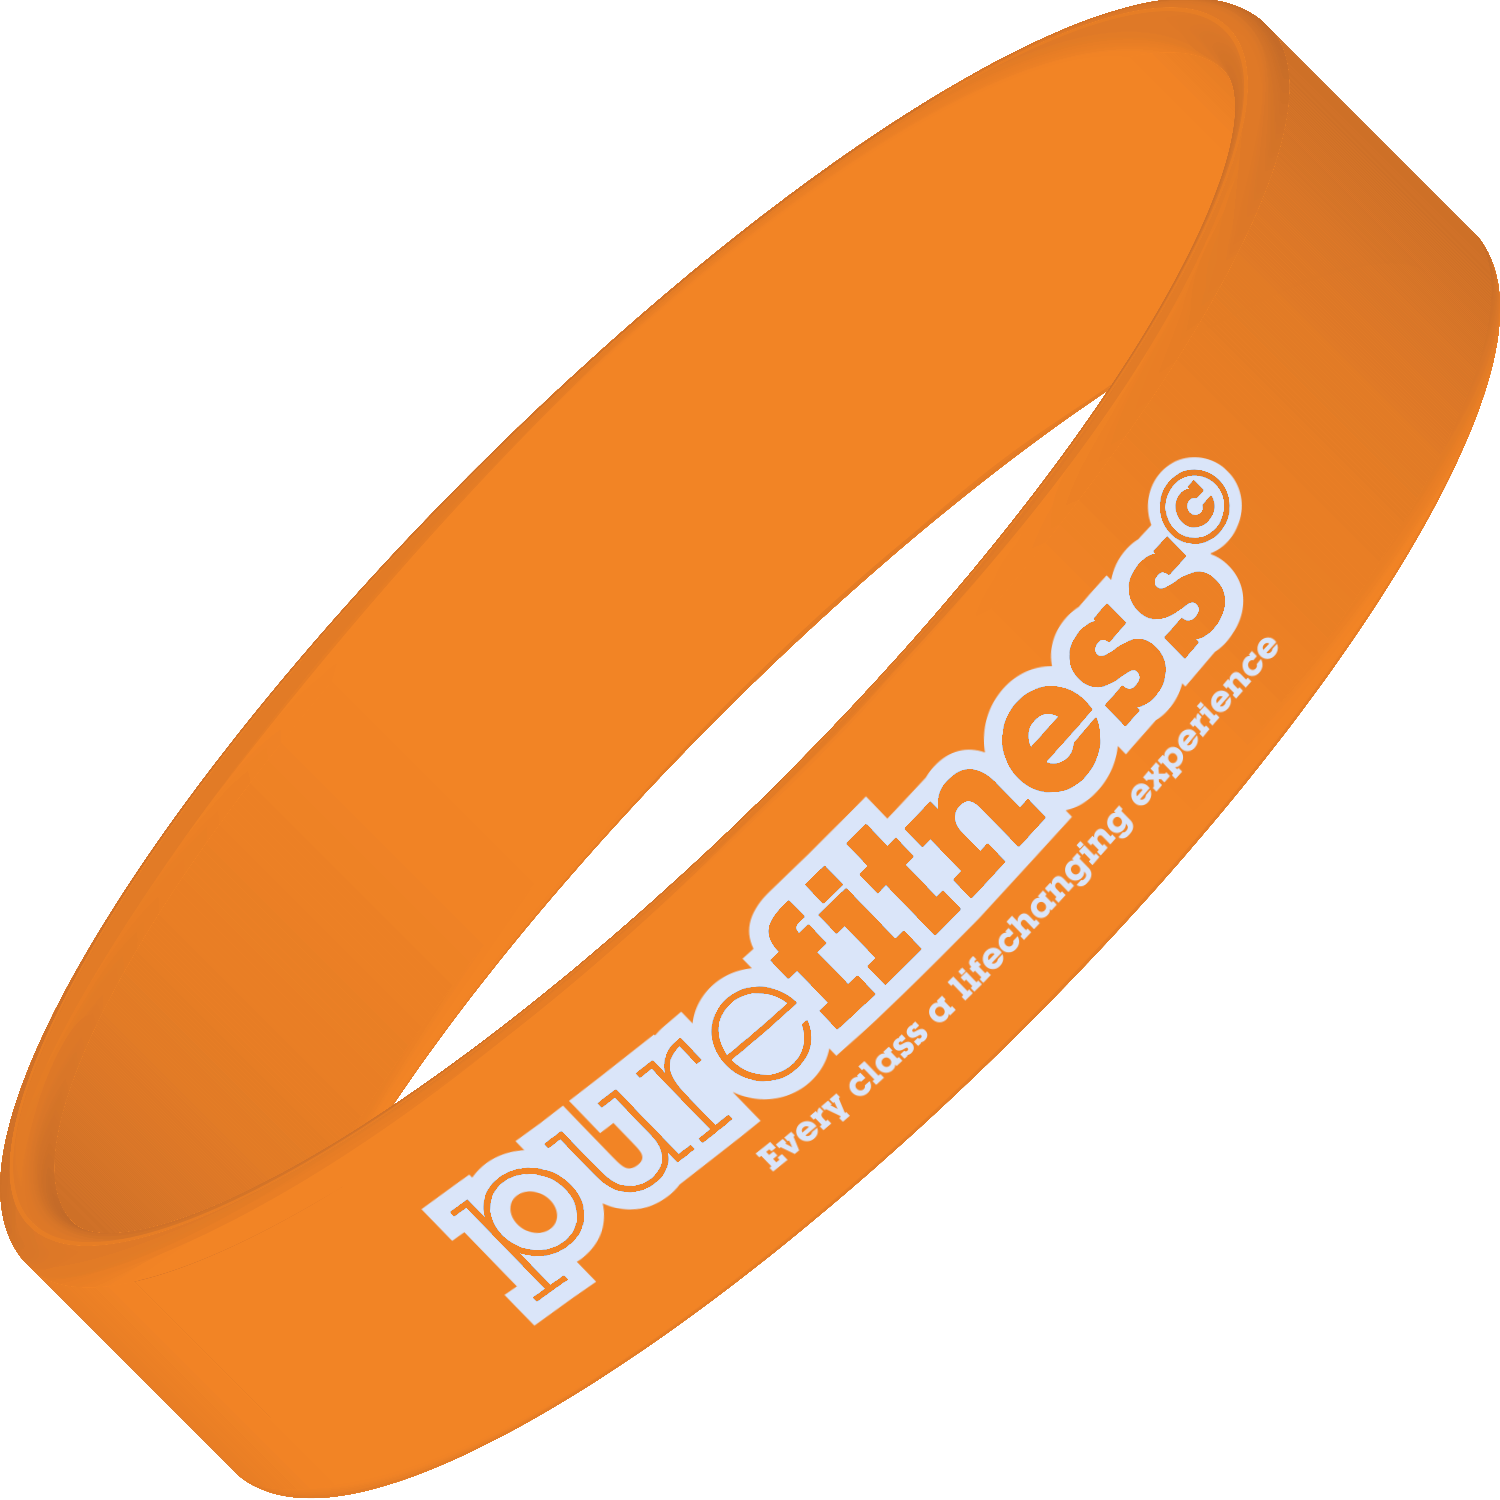 Express Printed Silicone Wristbands